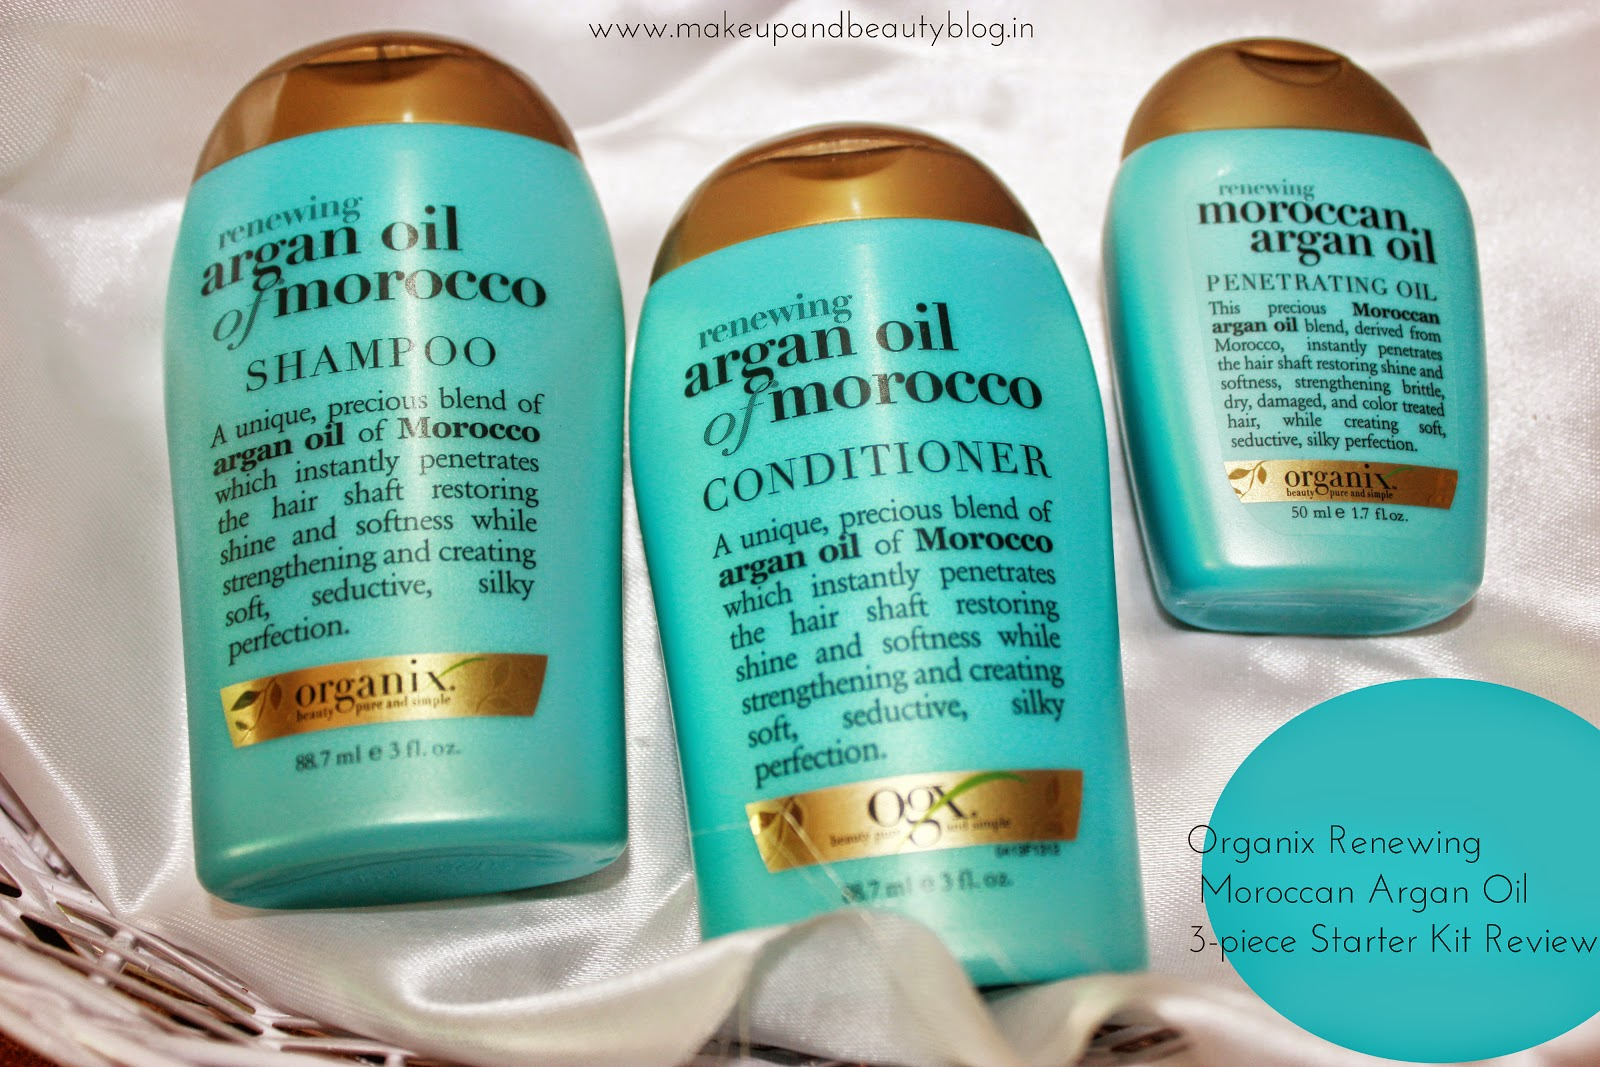 Organix Renewing Moroccan Argan Oil 3-piece Starter Kit